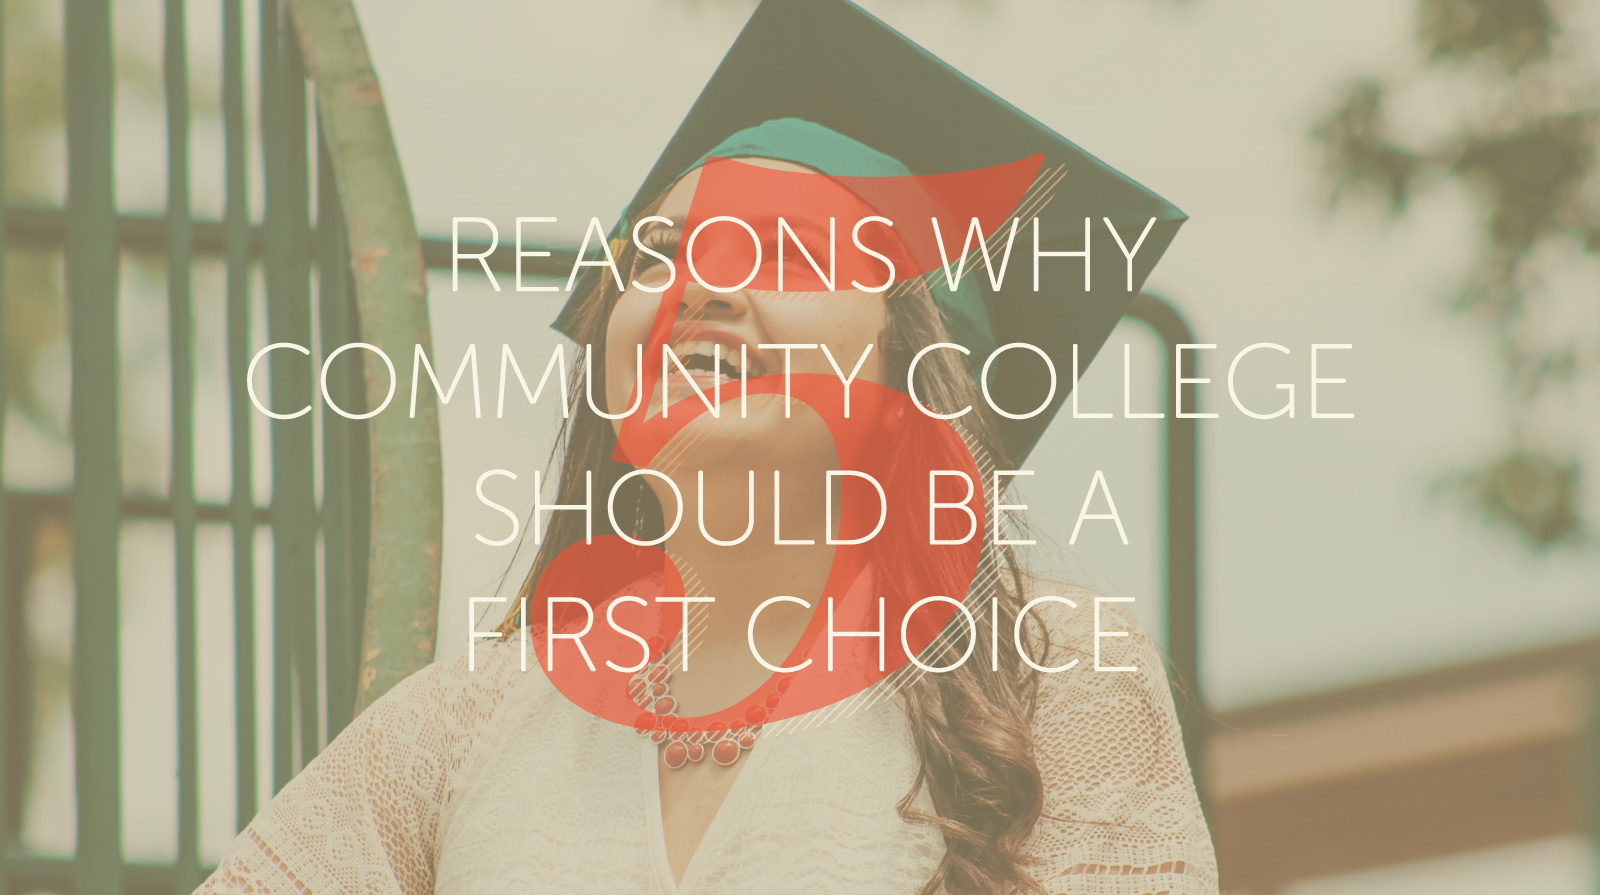 community college should be a first choice